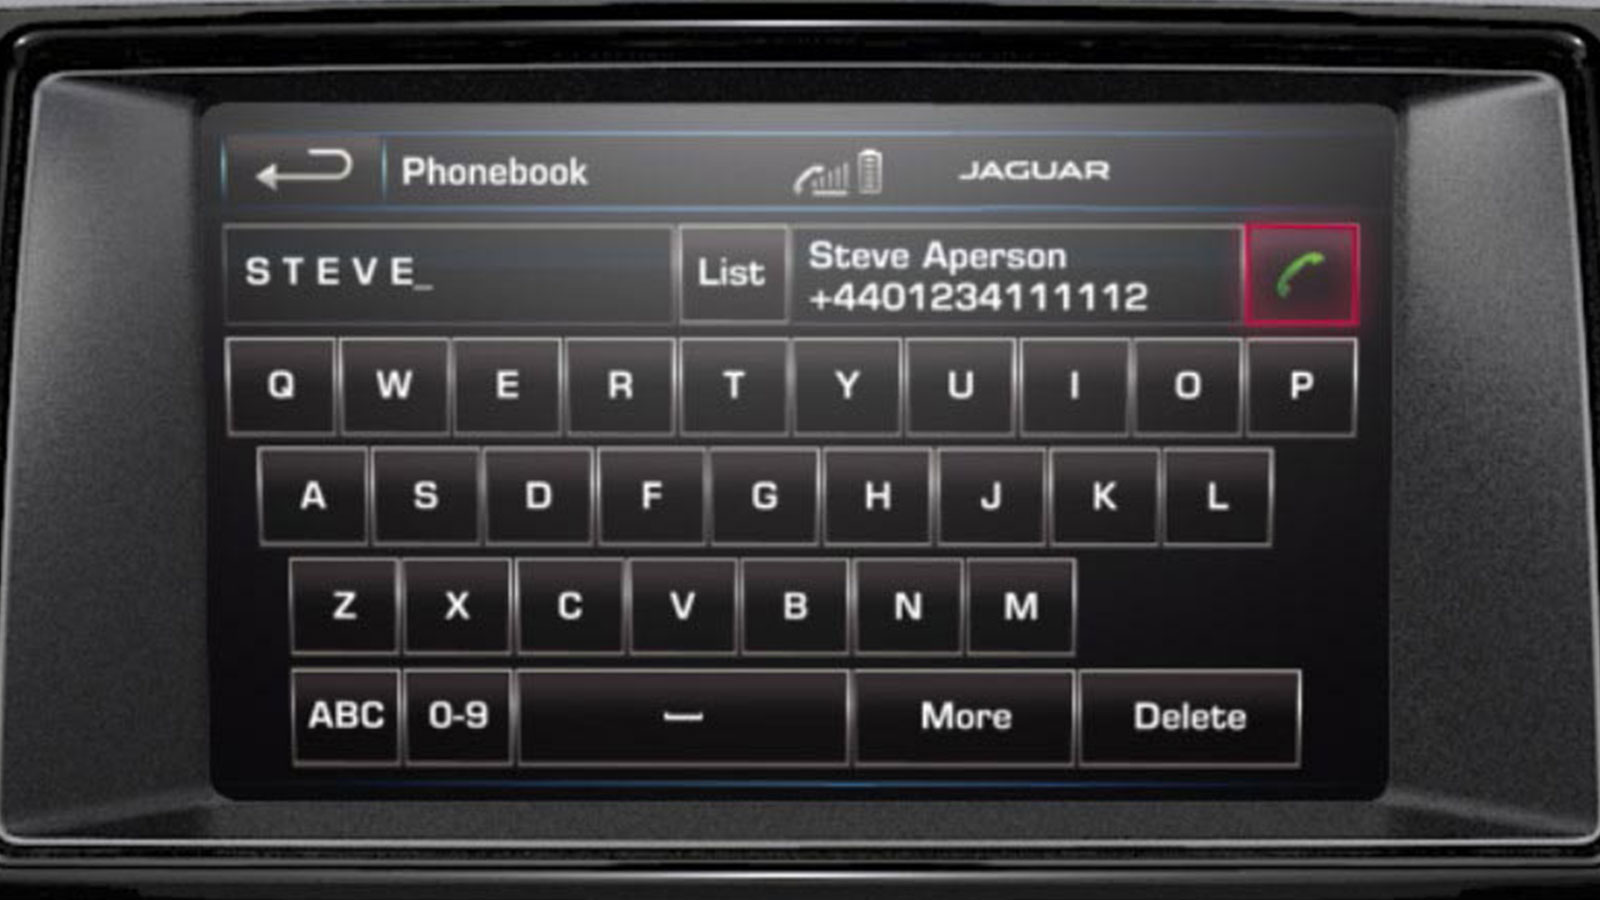 Jaguar F-Type Hands Free Phone Display